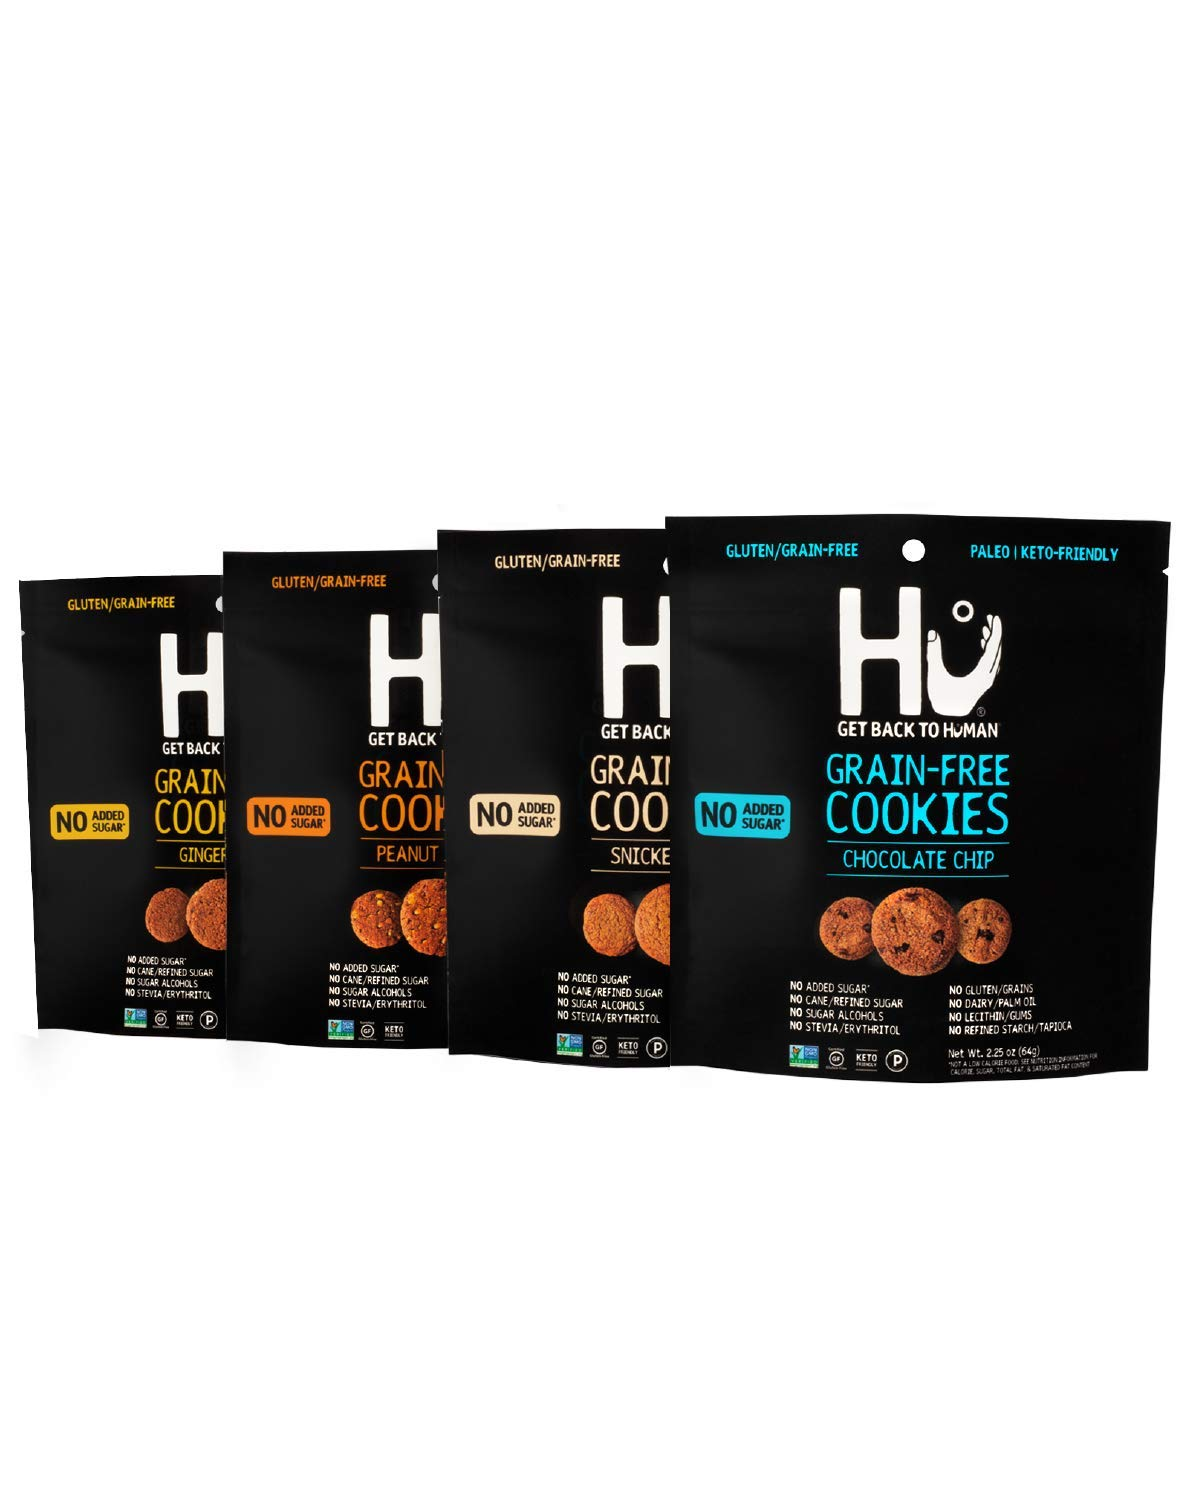 Hu Keto Snacks Variety Pack | 4 Flavor Pack | Gluten Free, Grain Free, Dairy Free & No Added Sugar Snack | Paleo, Non GMO Certified & Keto Friendly Desserts | Crunchy Assorted Mini Cookies